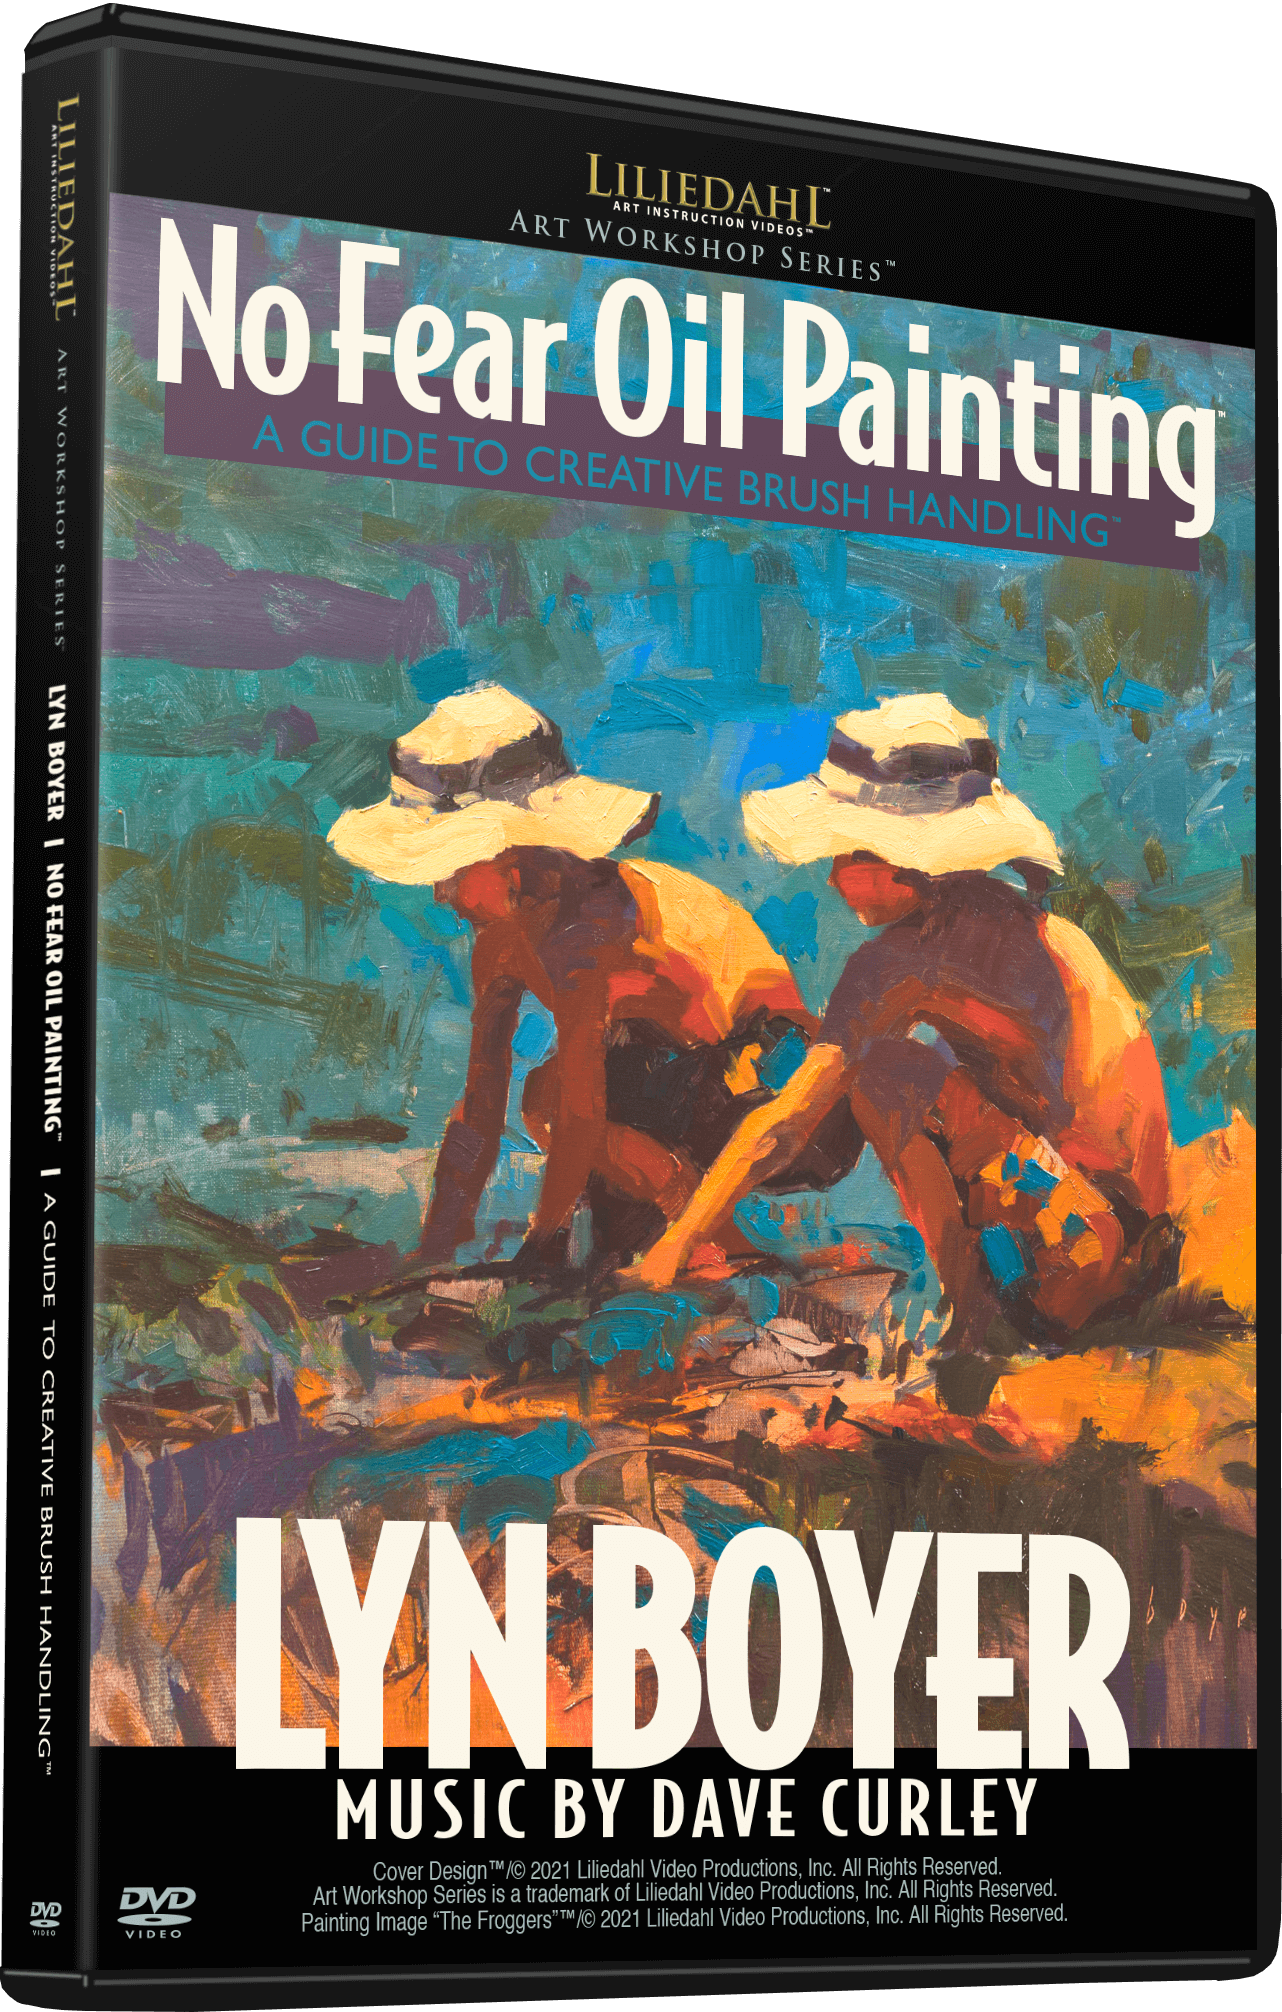 Lyn Boyer: No Fear Oil Painting